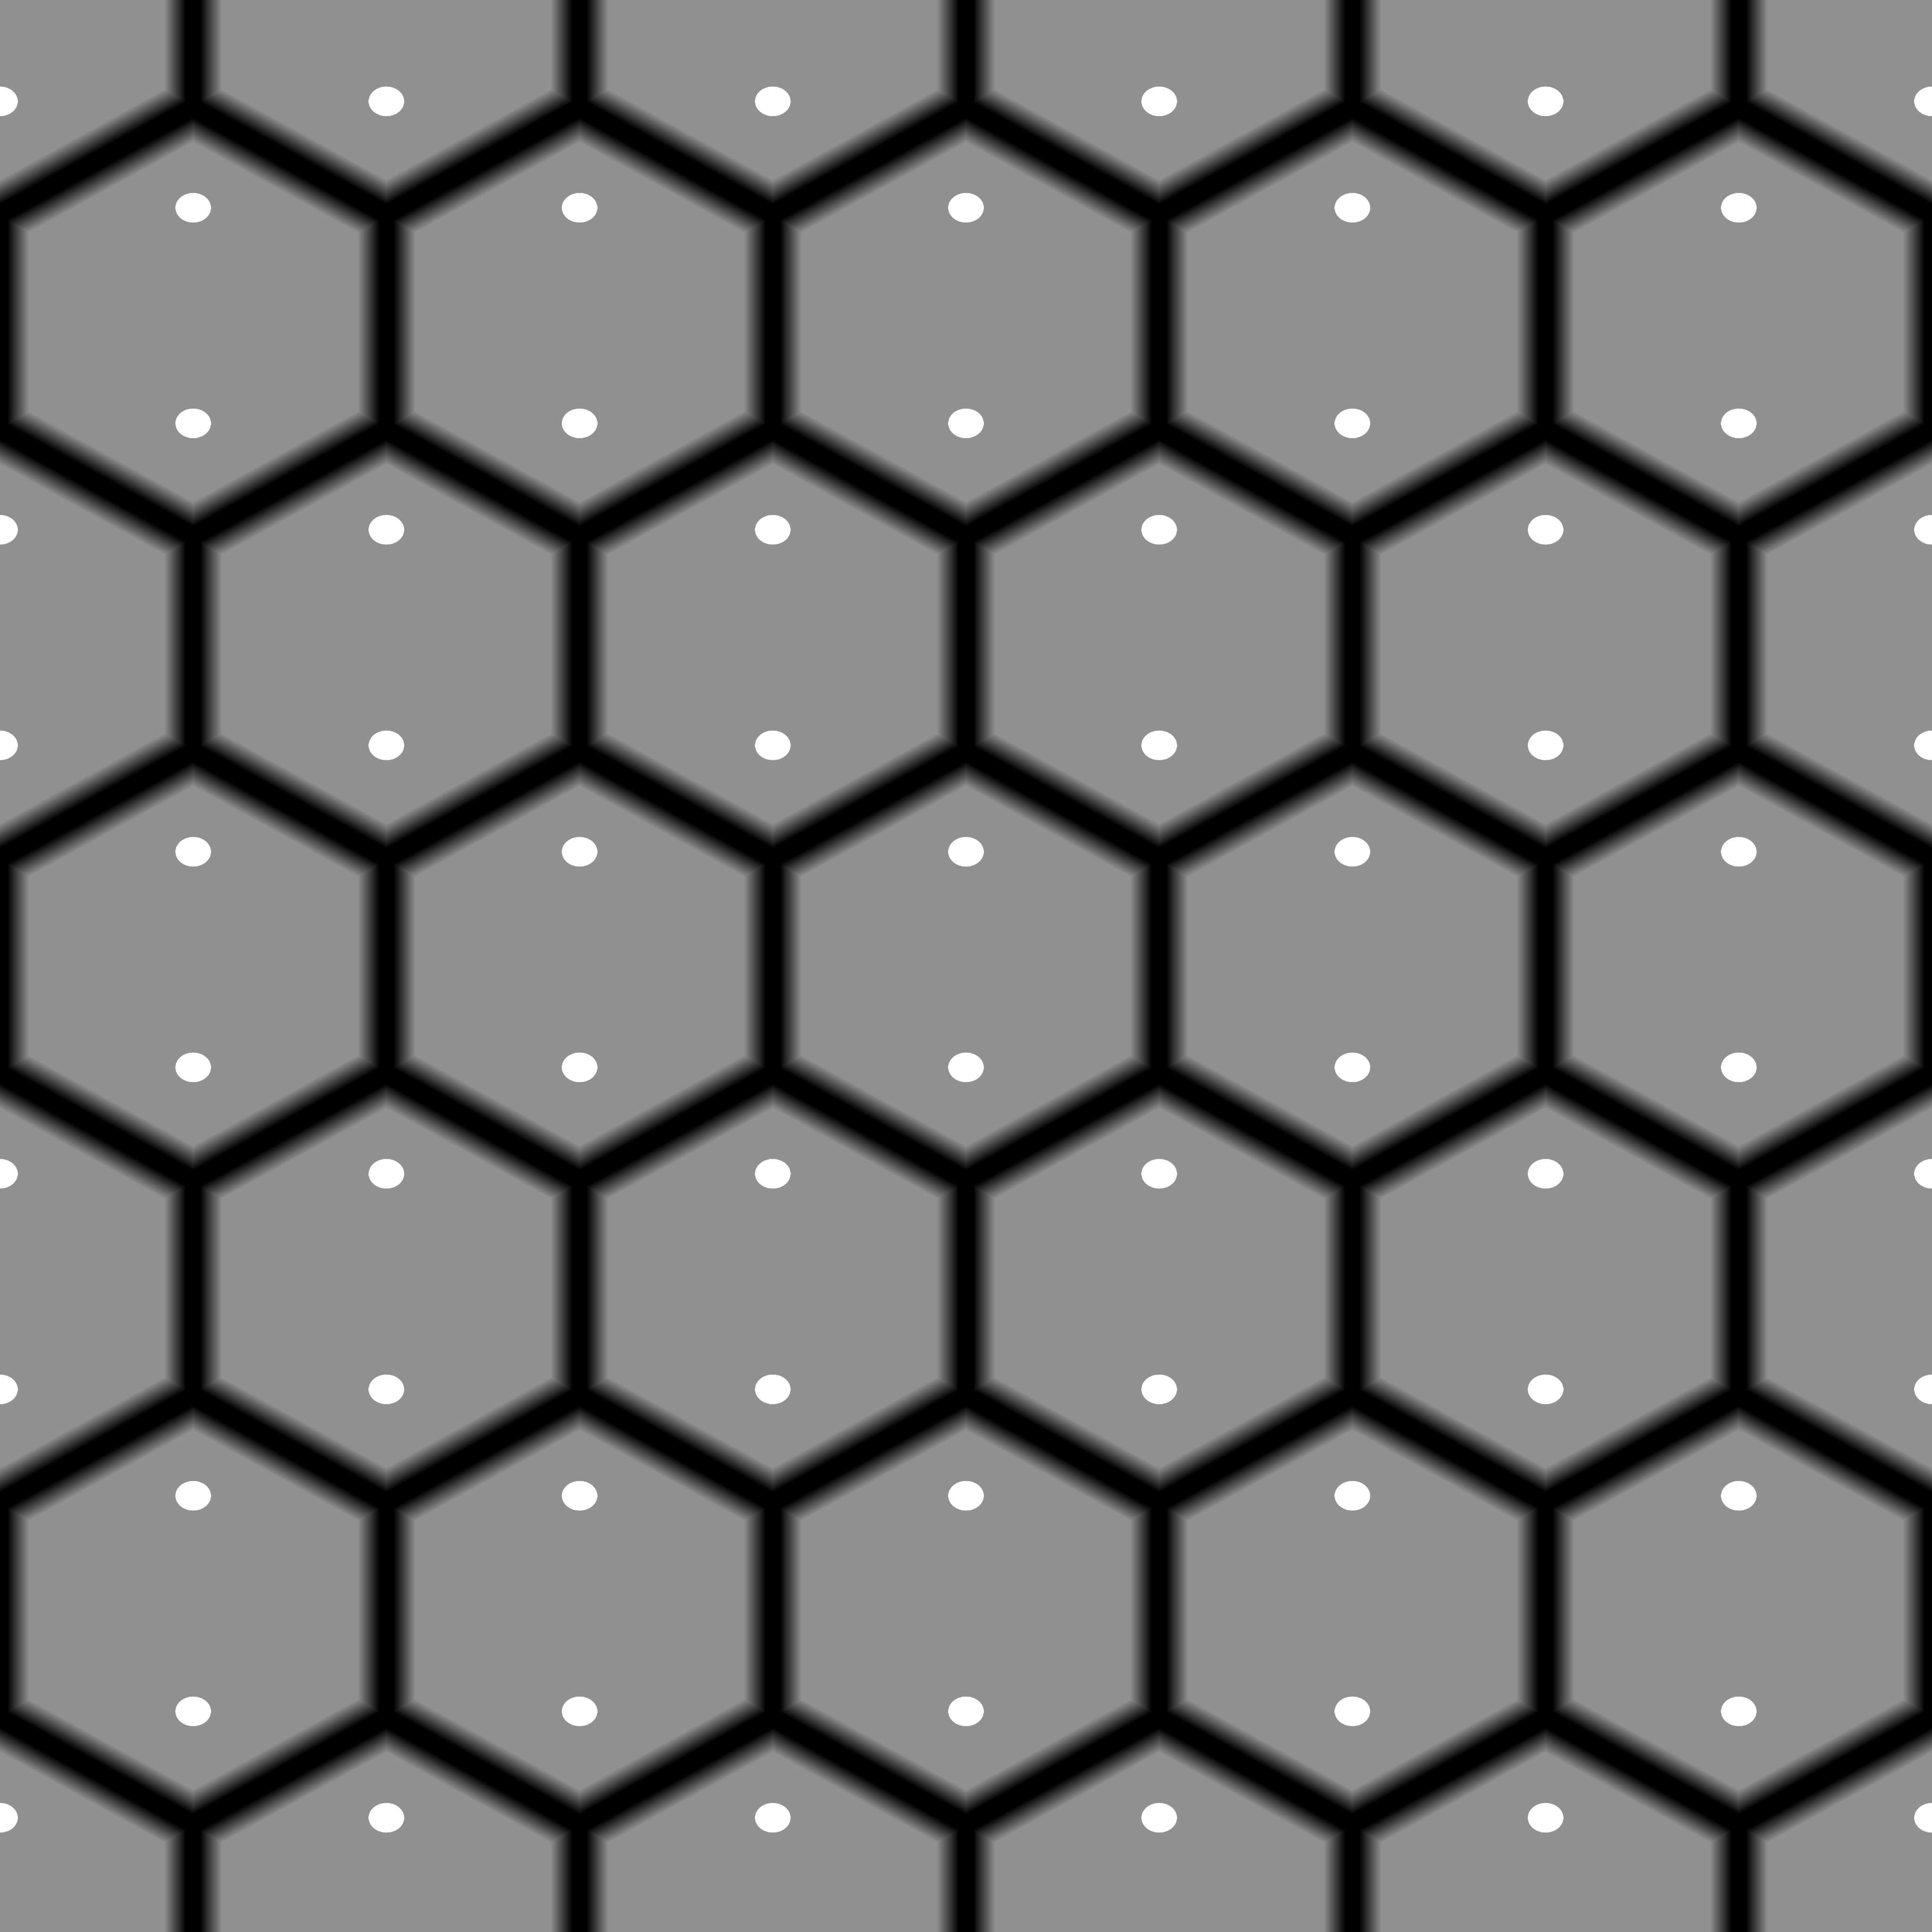 4096 Scifi Hex Tiles Pbr Texture Opengameart Org